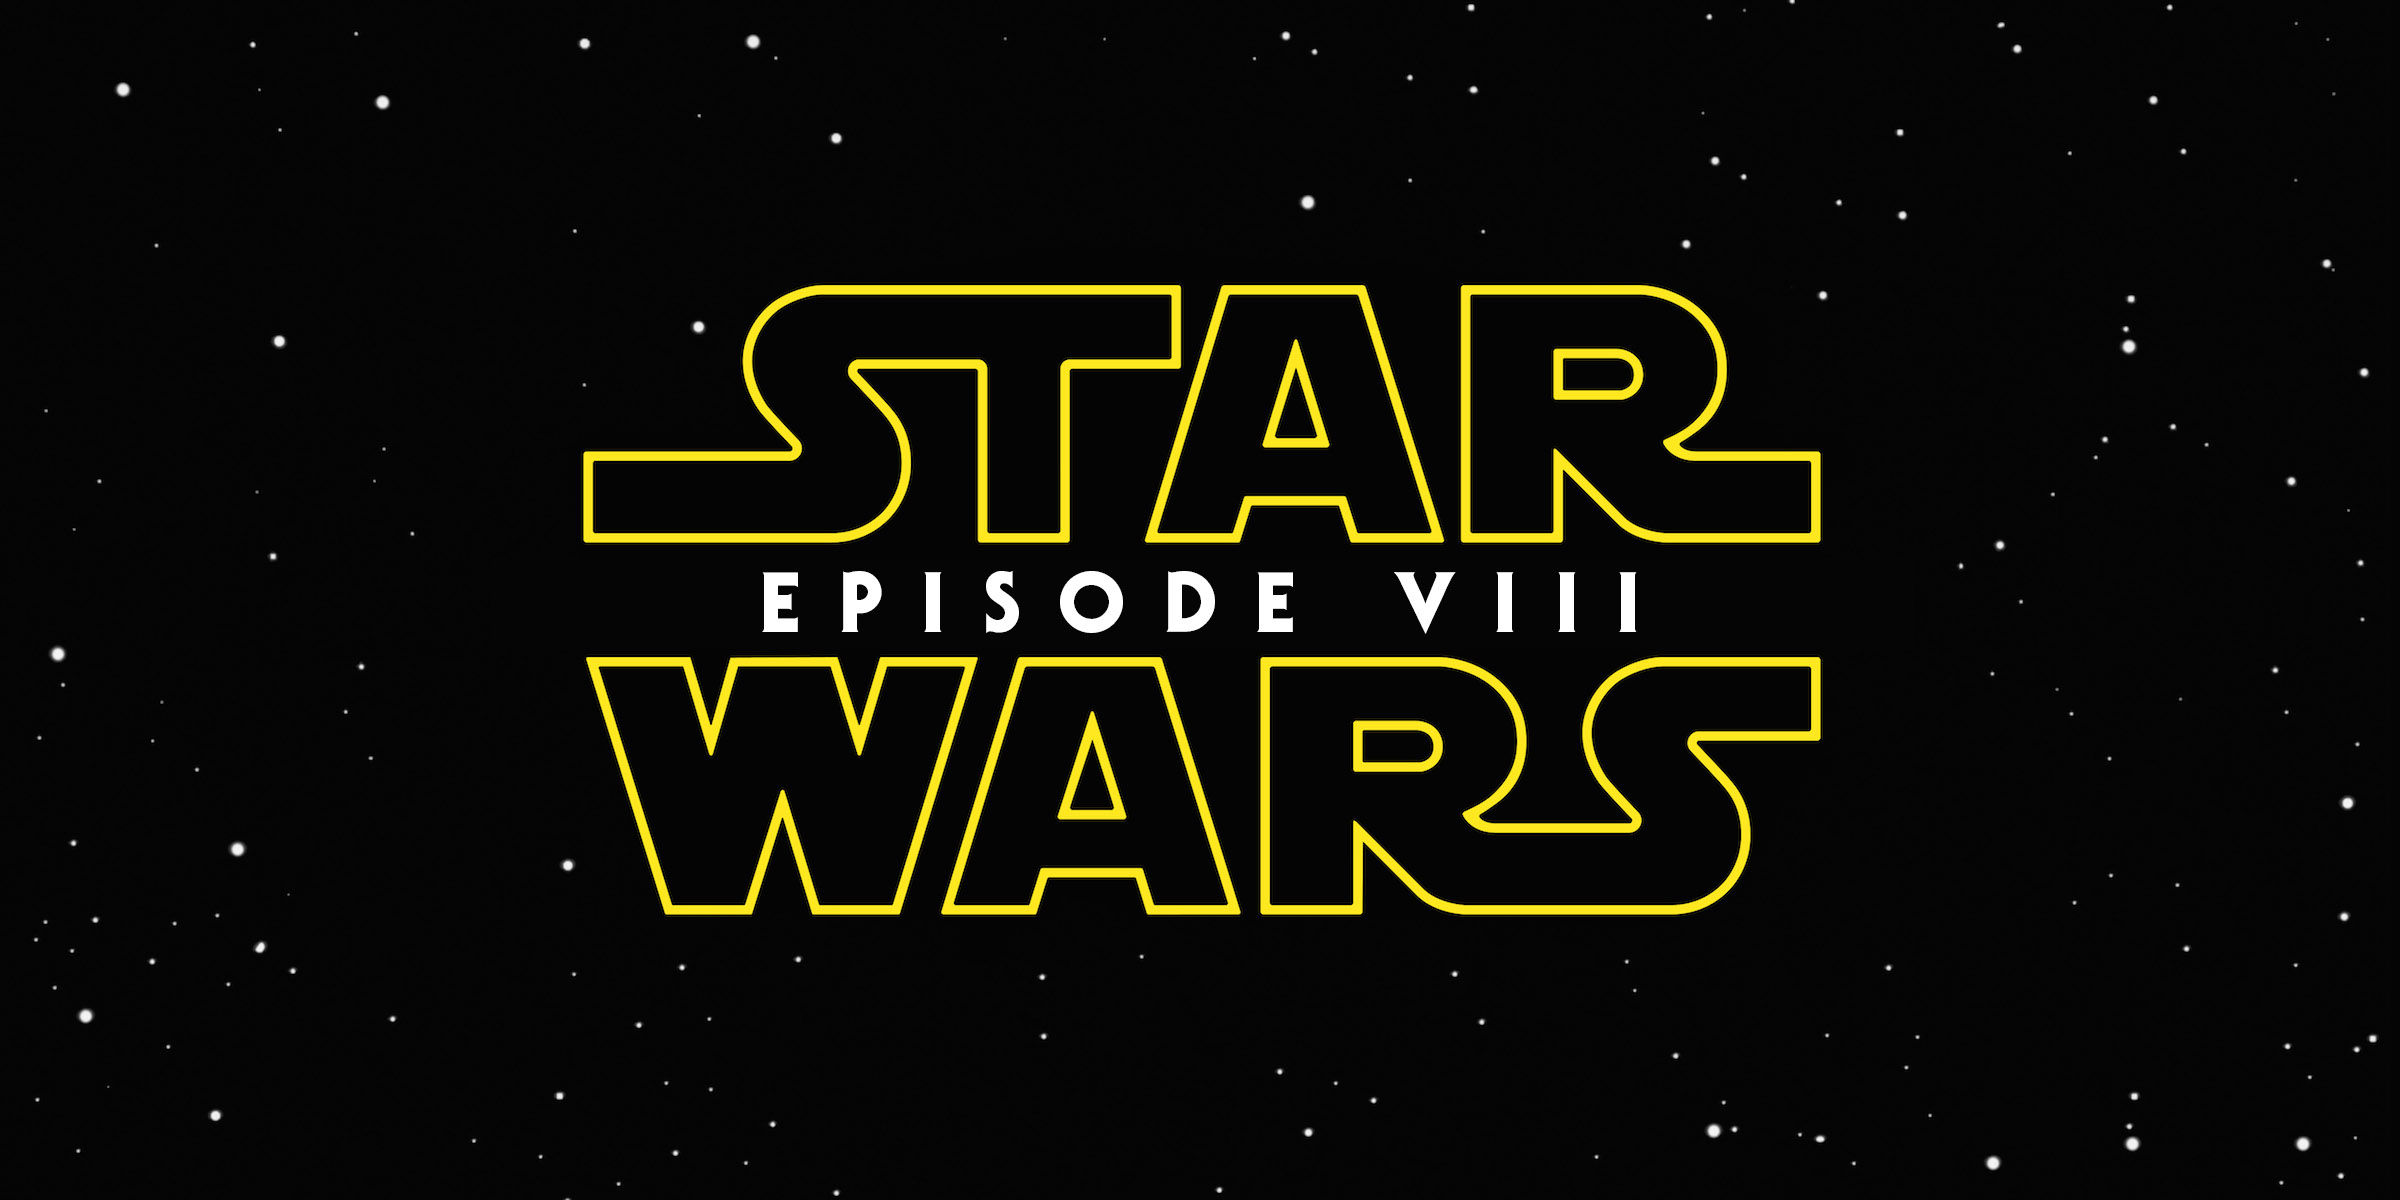 STAR WARS 8 Logo Star Wars: John Boyega Says Episode 8 Is Darker, Bigger